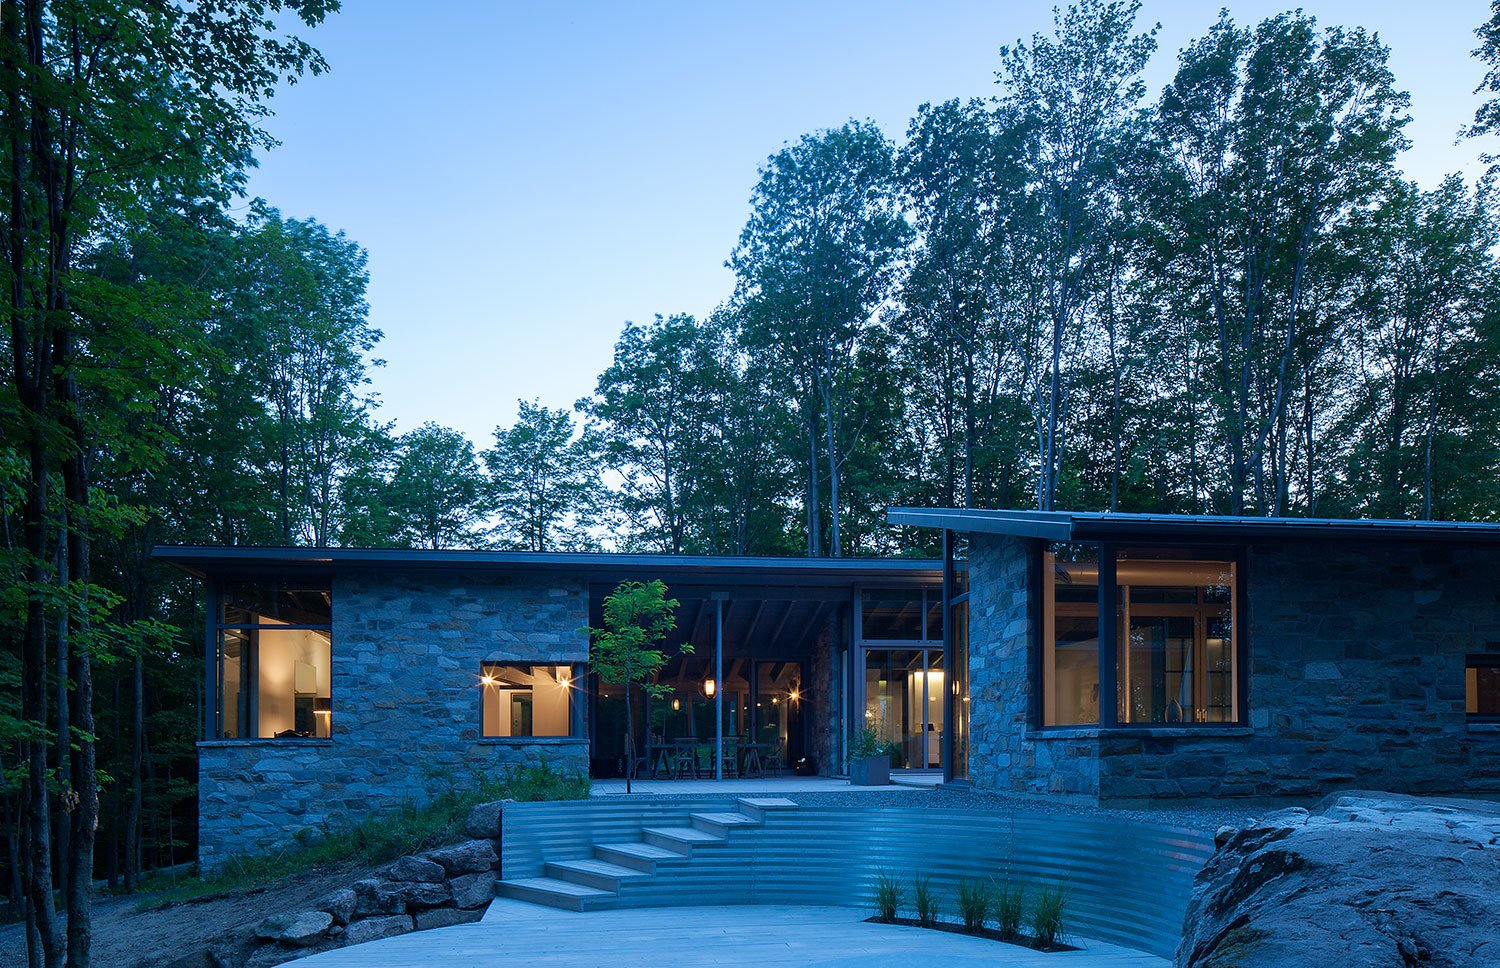 7 Incredible Modern Homes by Canadian Architect Paul Bernier - Photo 3 of 7 - The boundaries between the indoors and outdoors are blurred with breakthroughs and a massive window on the southeast corner that presents stunning diagonal views of the forest.